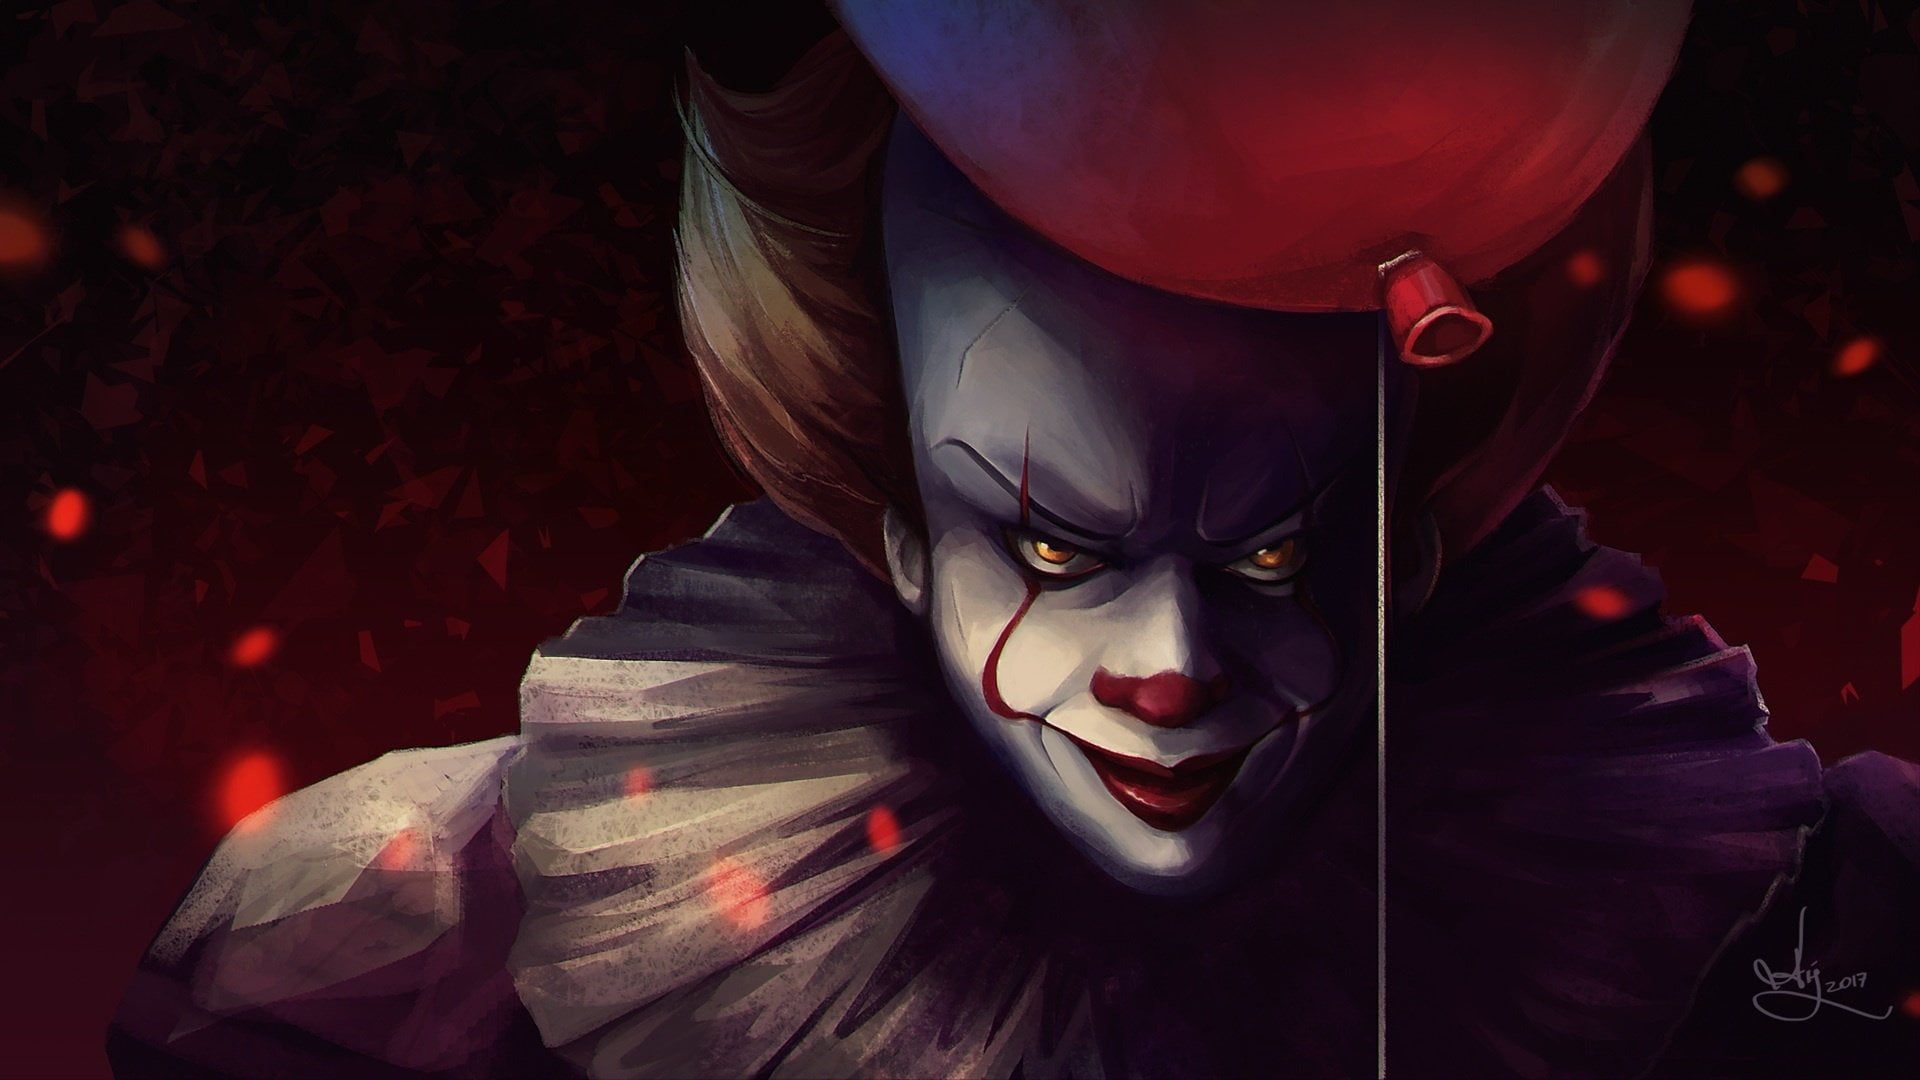 Movie It 2017 Balloon Clown Pennywise It 1080p Wallpaper Hdwallpaper Desktop Pennywise The Dancing Clown Pennywise Pennywise The Clown